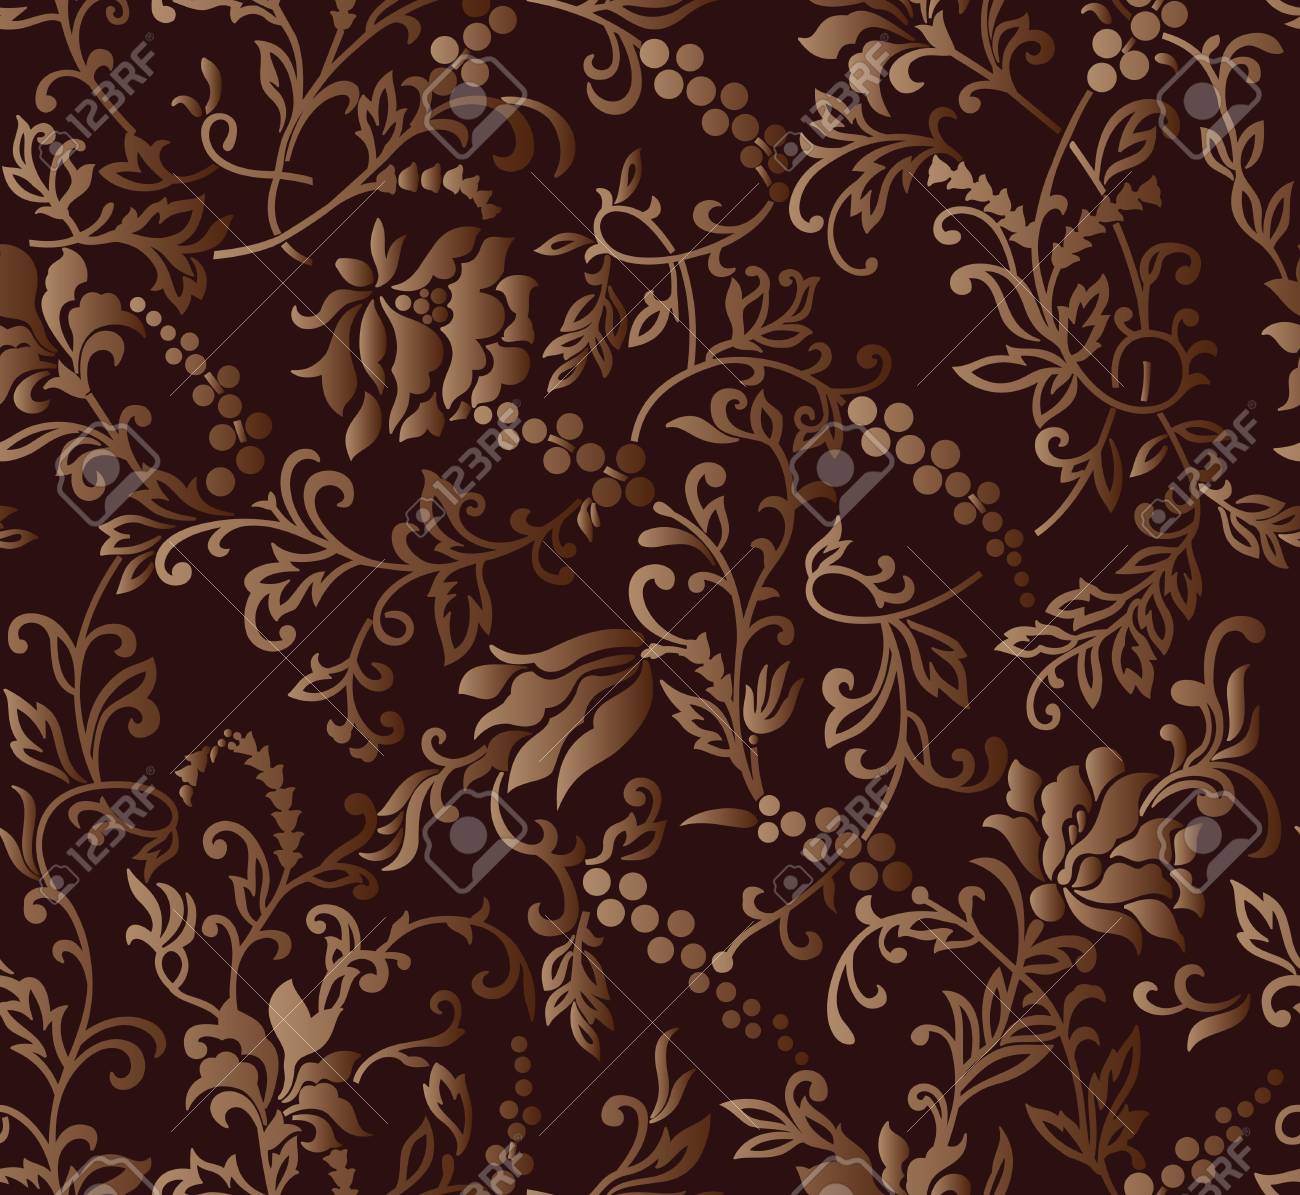 Seamless Brown Rich Floral Wallpaper